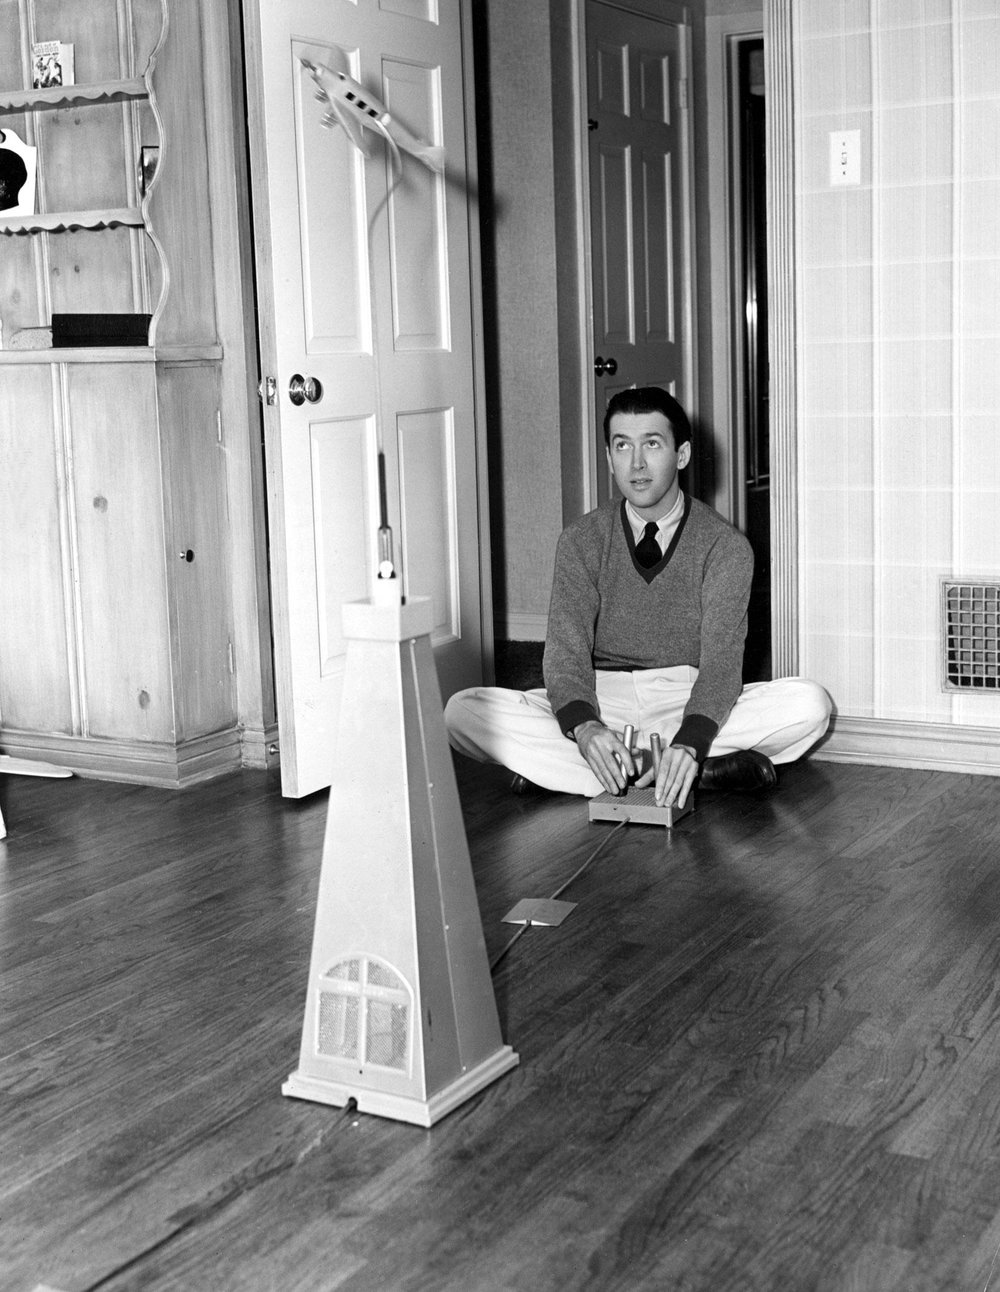 He always loved planes - both of the model and real variety